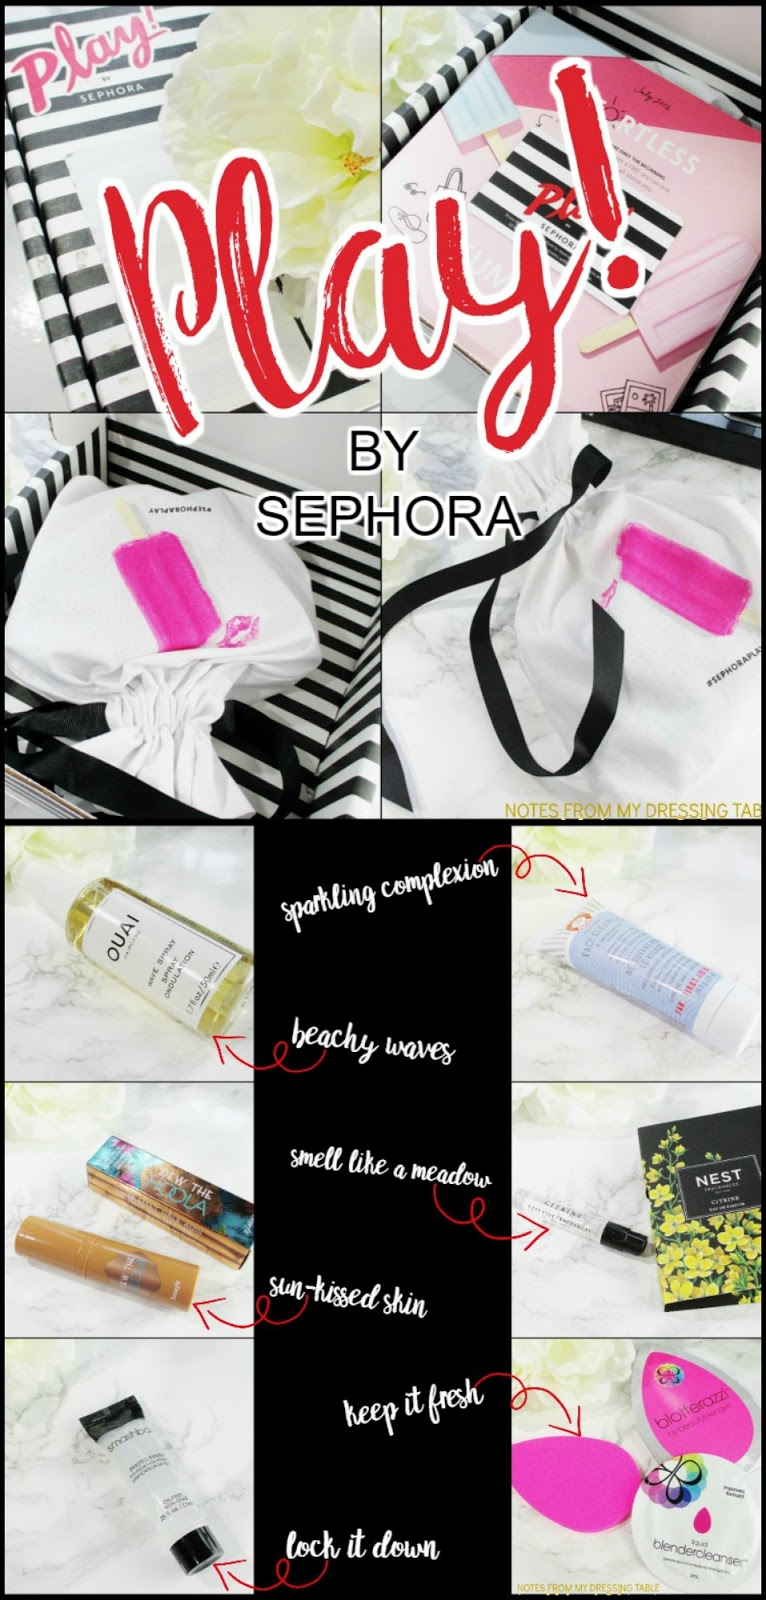 play-by-sephora-monthly-subscription-box-3